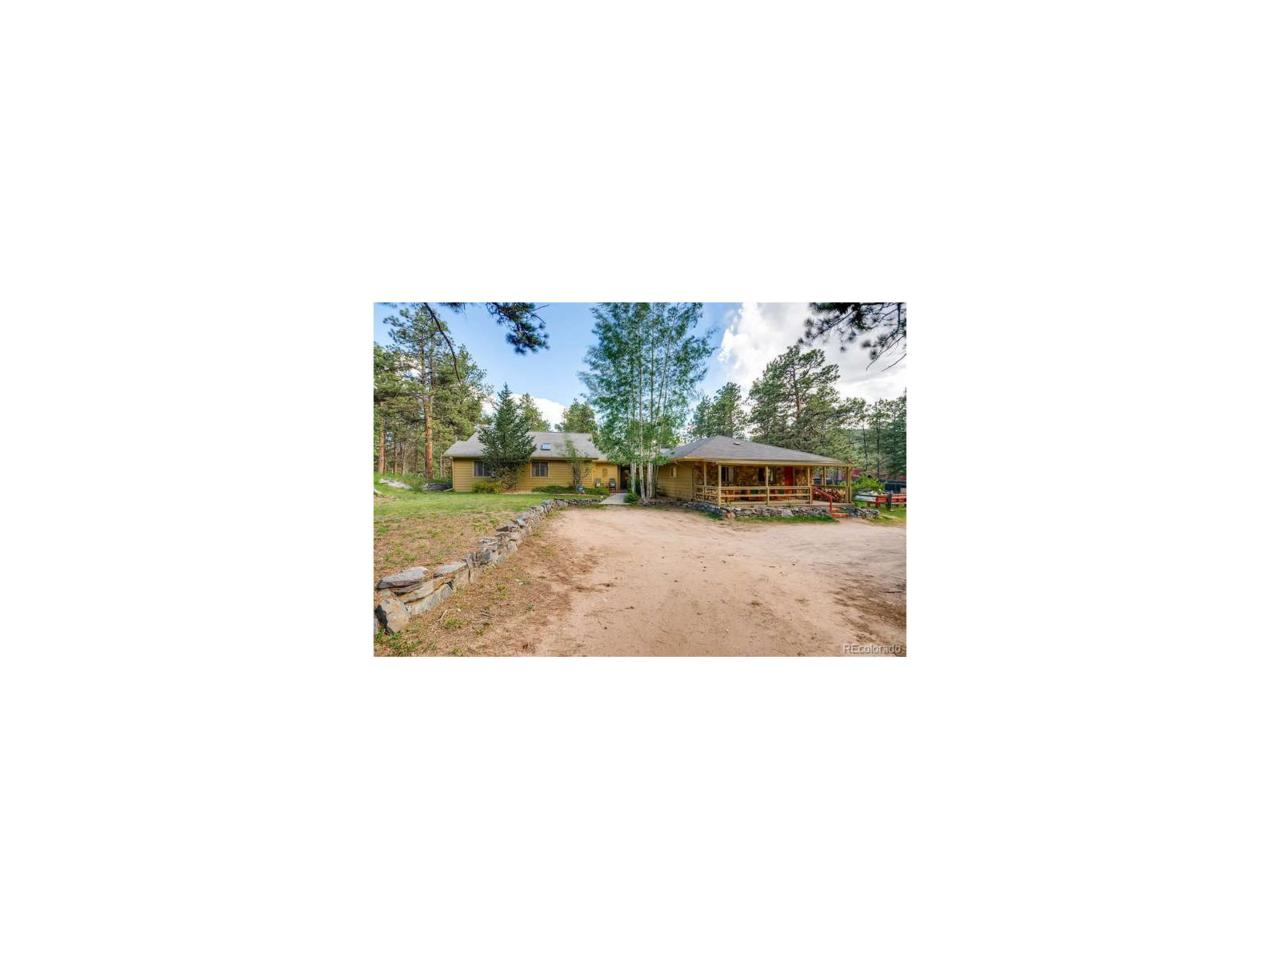 6569 Kiem Road, Evergreen, CO 80439 (MLS #7686017) :: 8z Real Estate